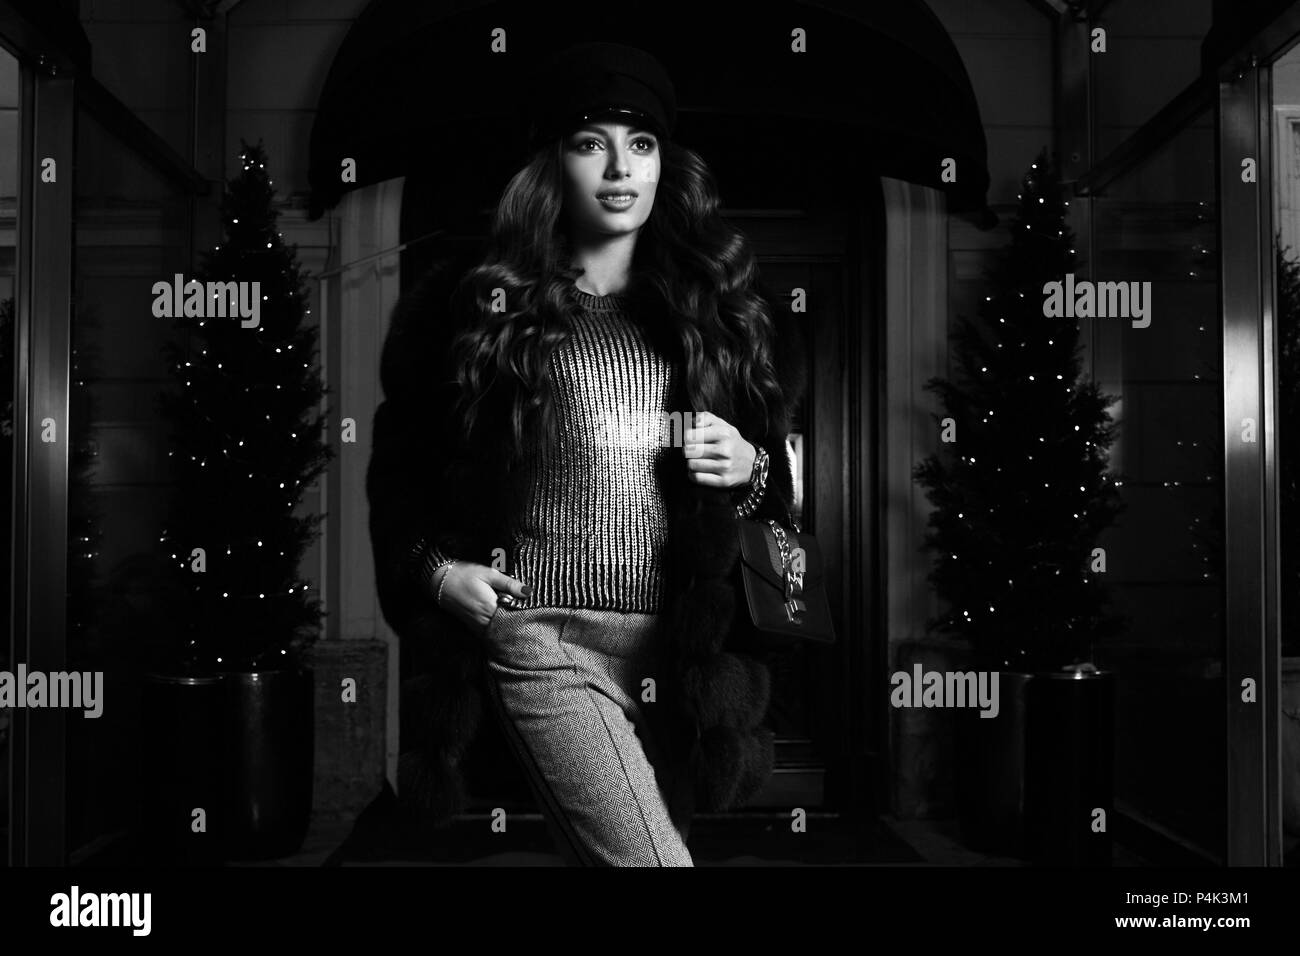 Gorgeous young woman with long brunette hair dressed in gray jumper, trousers and luxurious fur coat, holding handbag, posing on red carpet against bu - Stock Image